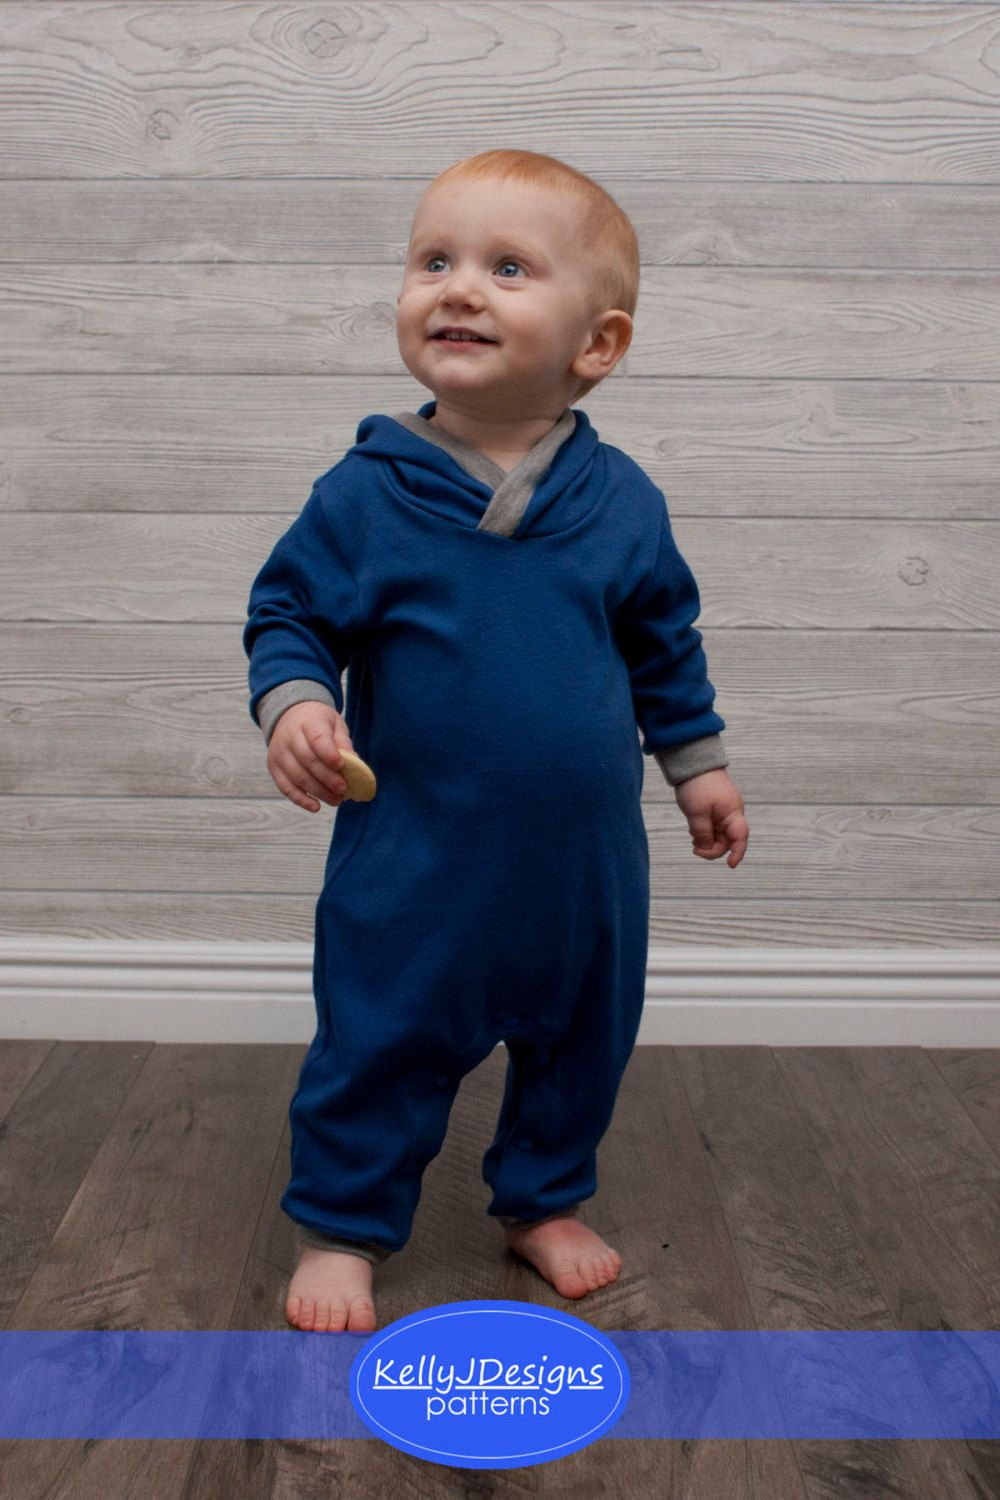 d9d7b17e973be This romper was designed to be super comfy for active babies and ...